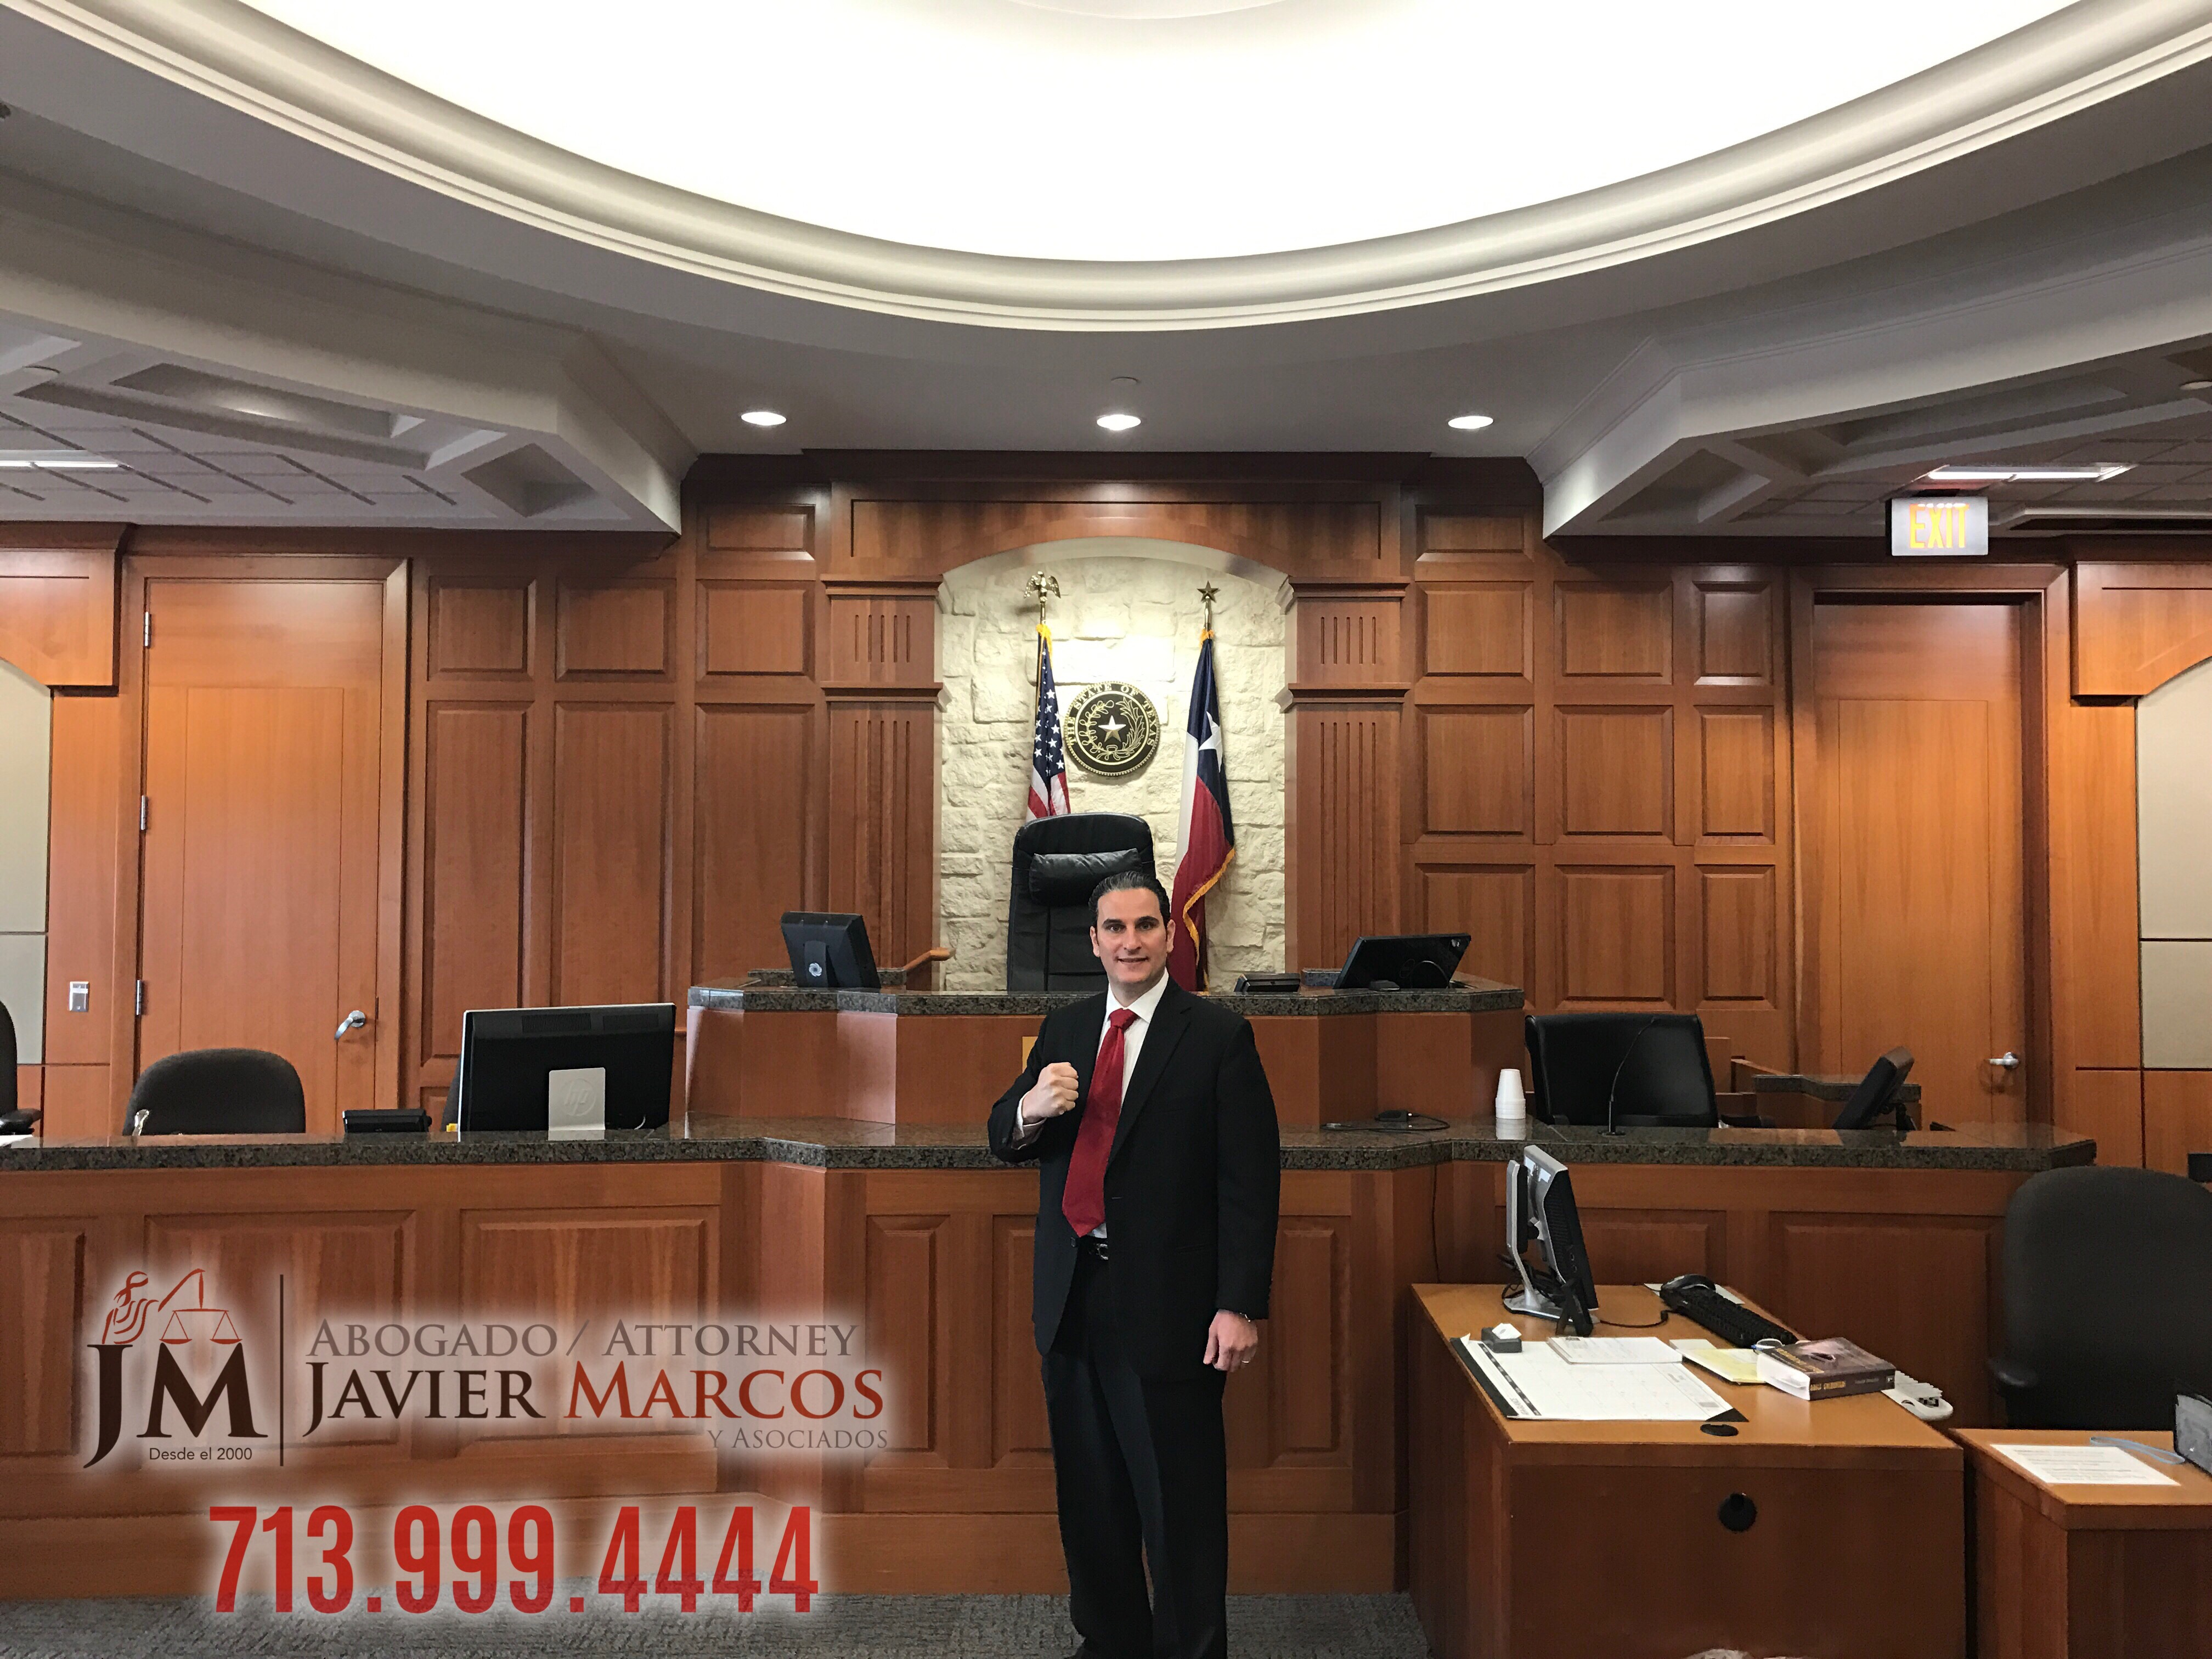 Personal Injury Lawyer Javier Marcos